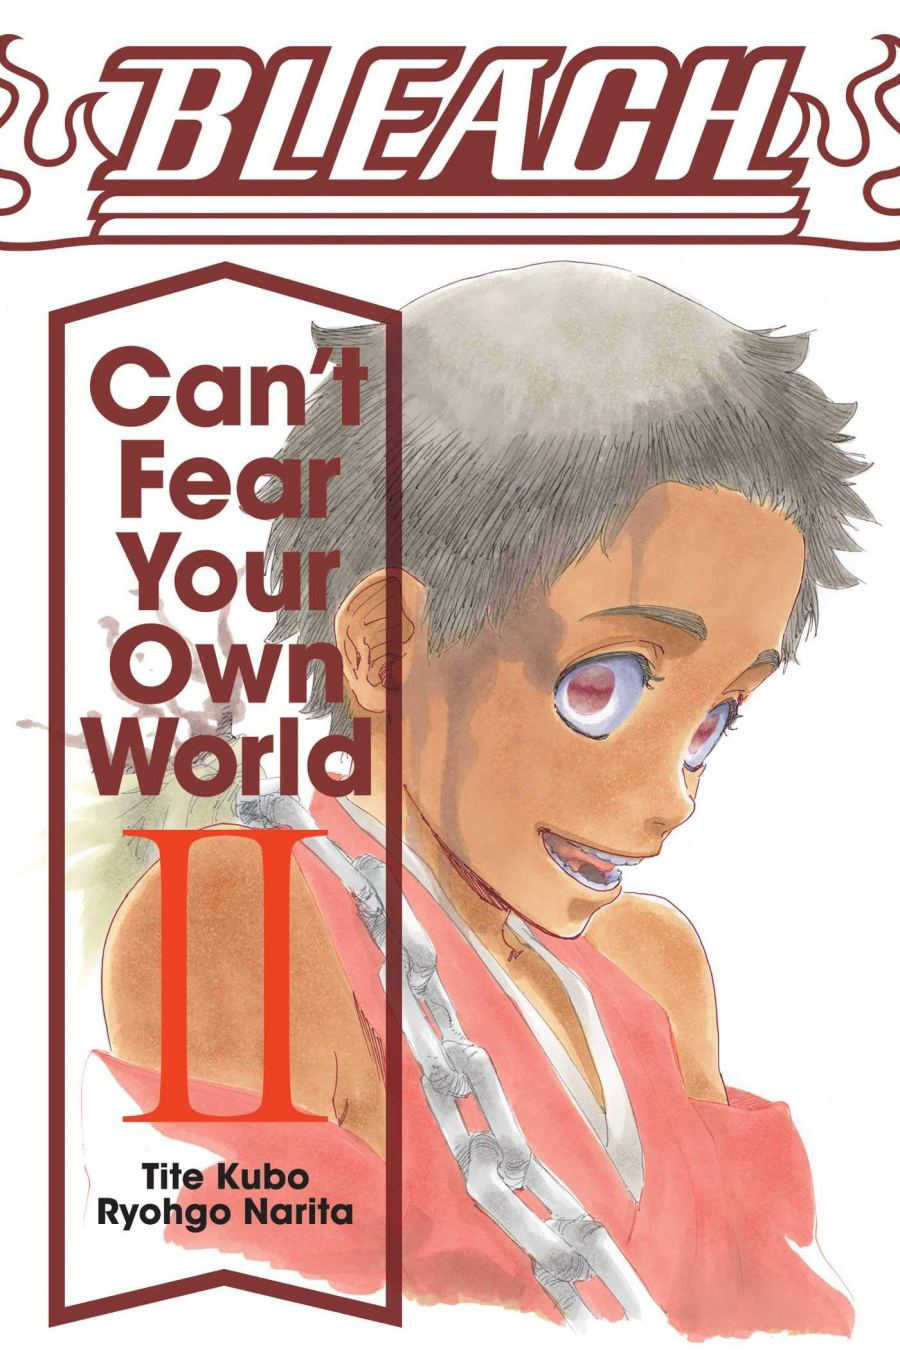 Bleach: Can't Fear Your Own World Volume 2 Cover